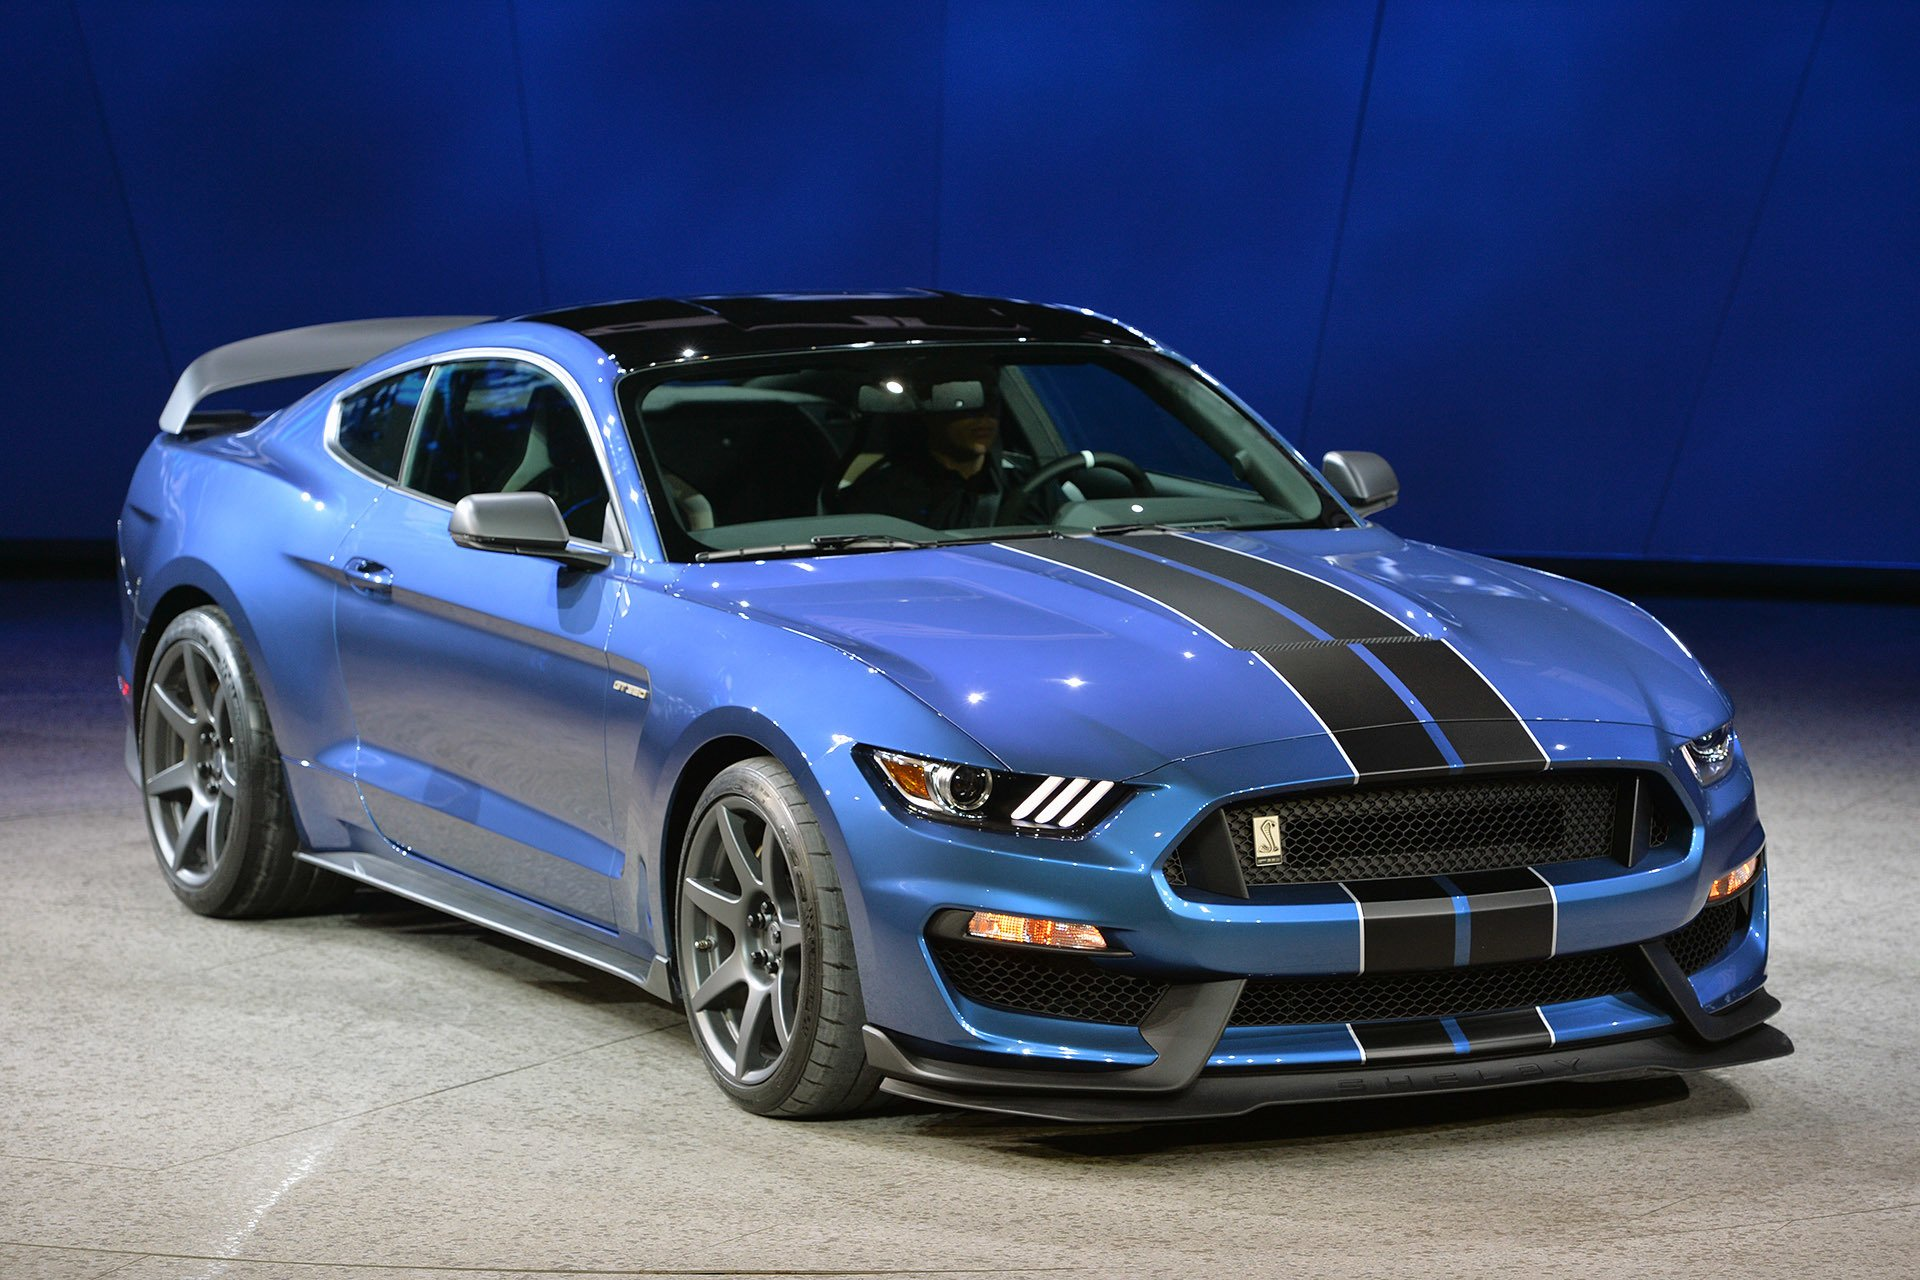 2016 Ford Shelby GT350R Detroit 2015 Photo Gallery   Autoblog 1920x1280